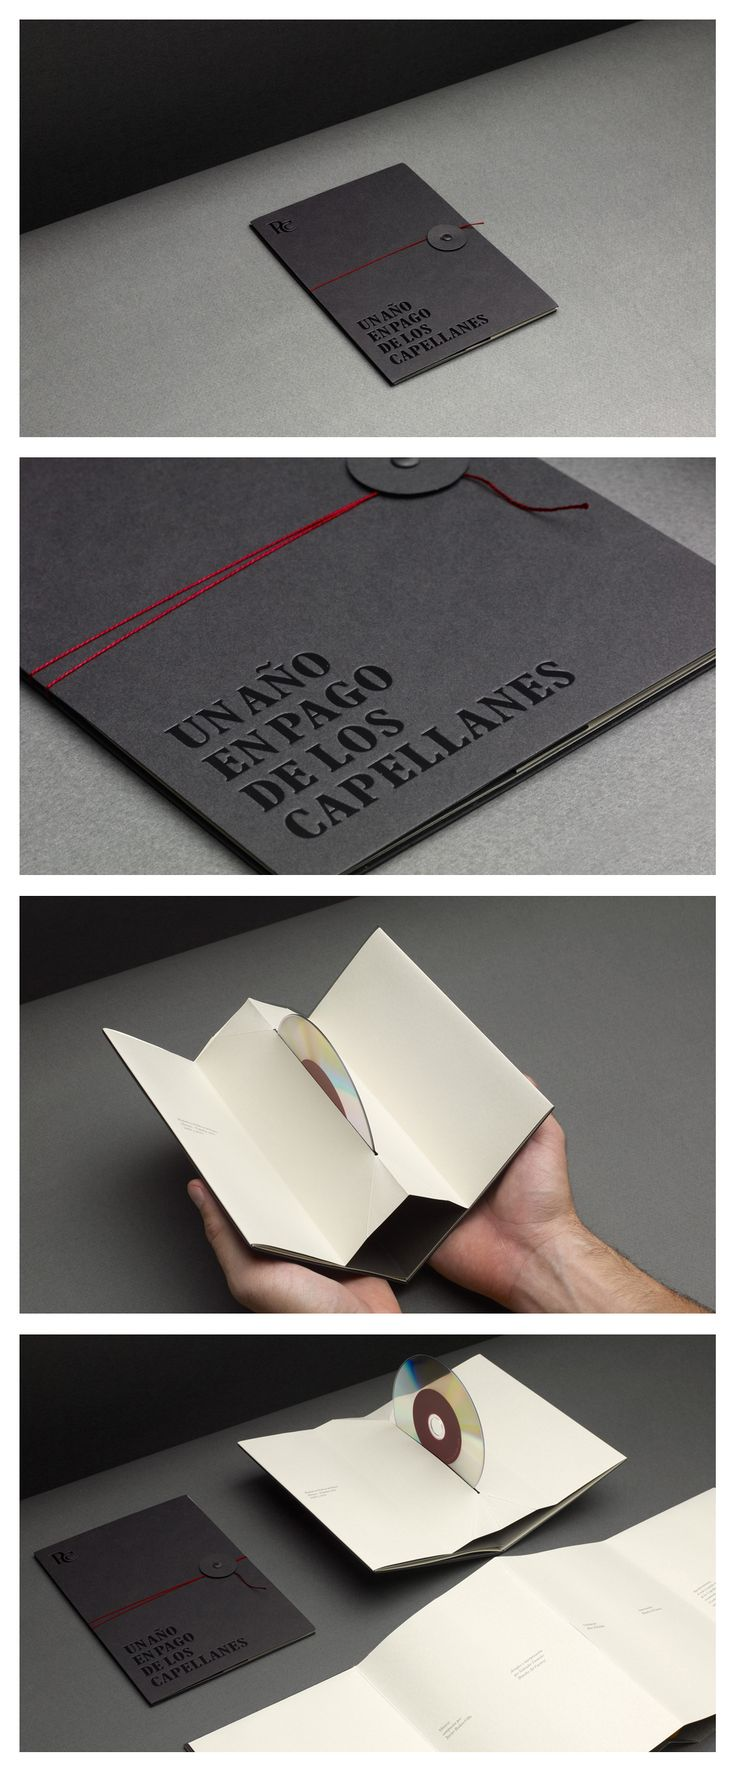 DVD case design by Mucho for Un año en Pago de los Capellanes, winner for Best Short Film at the 18th Oenovideo International Film Festival http://www.easyreplication.co.uk/